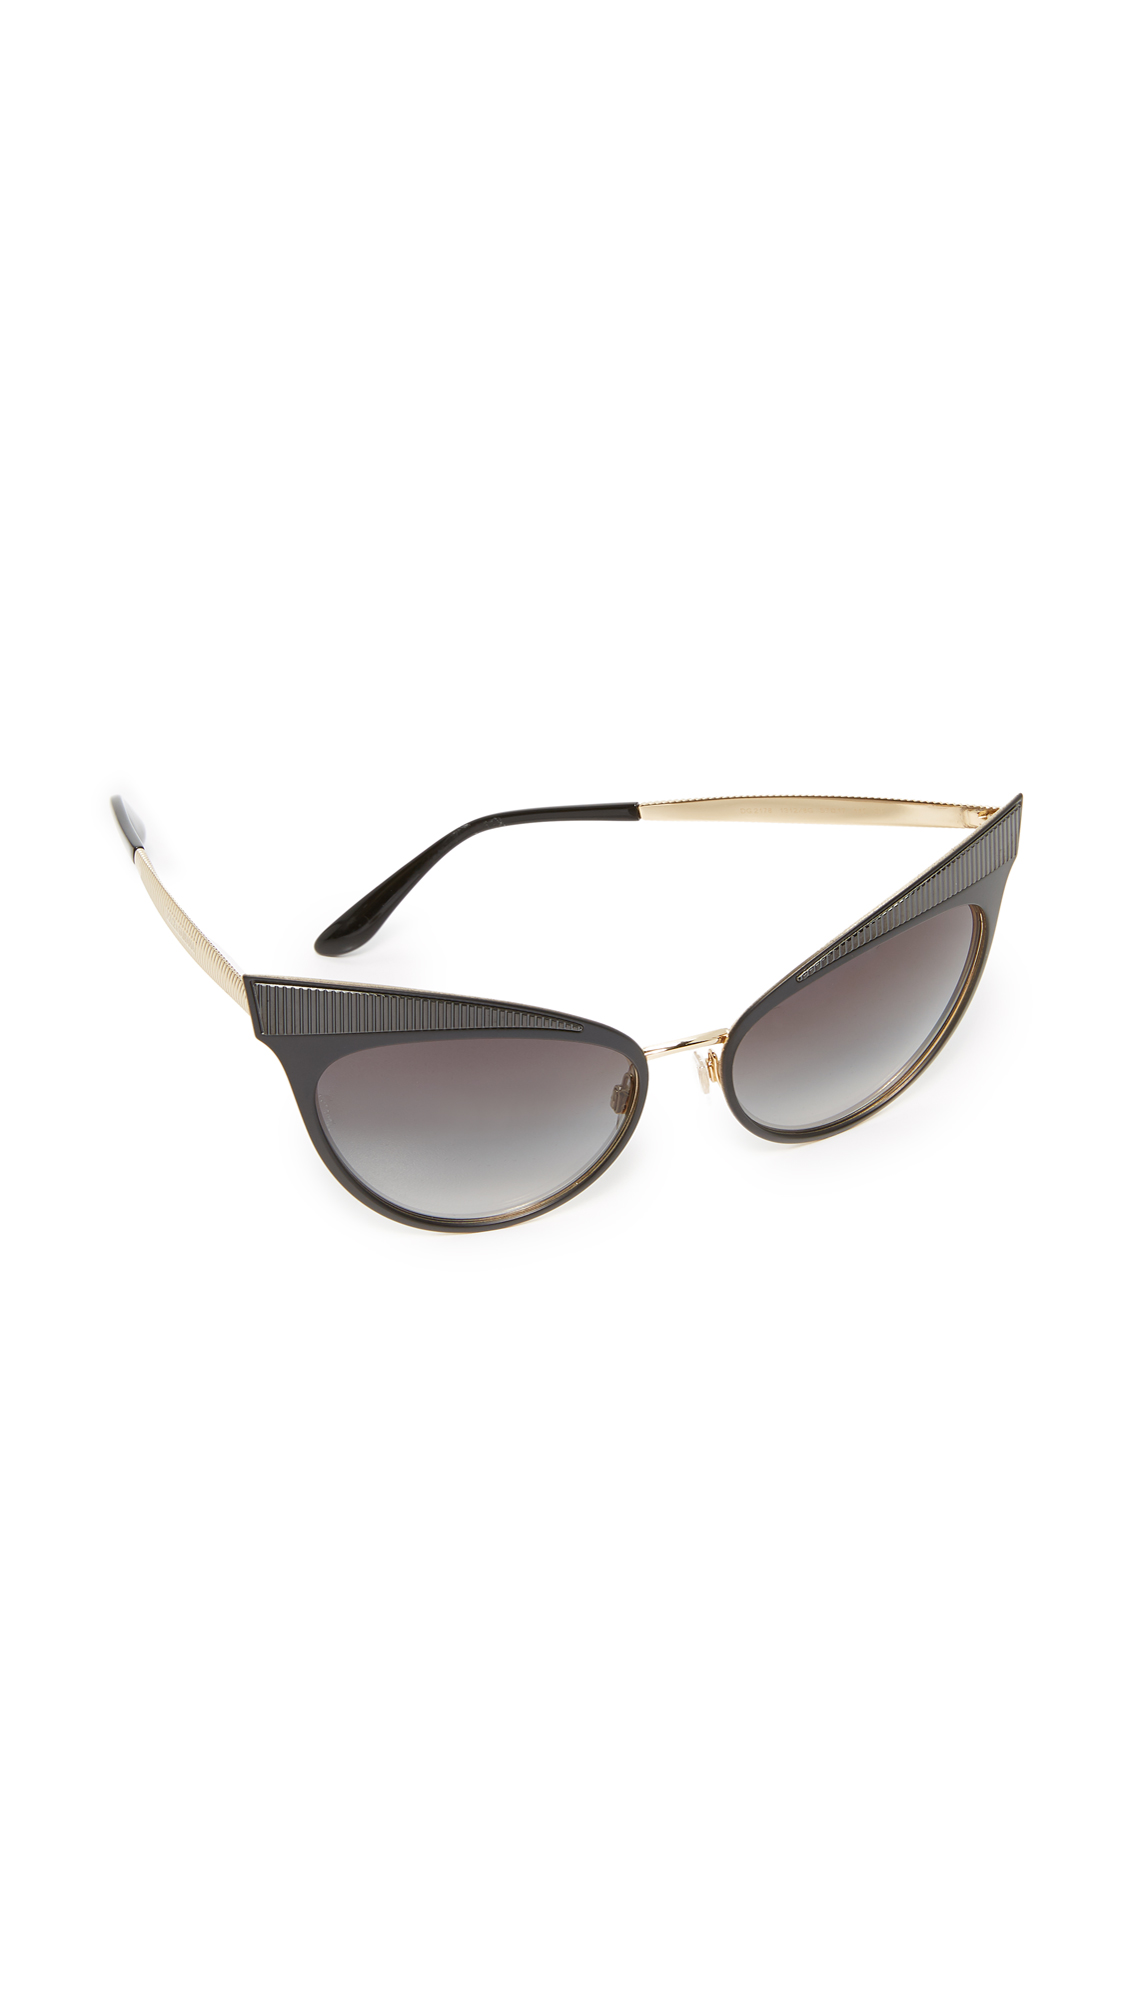 Dolce & Gabbana Grosgrain Cat Eye Sunglasses - Matte Black/Grey